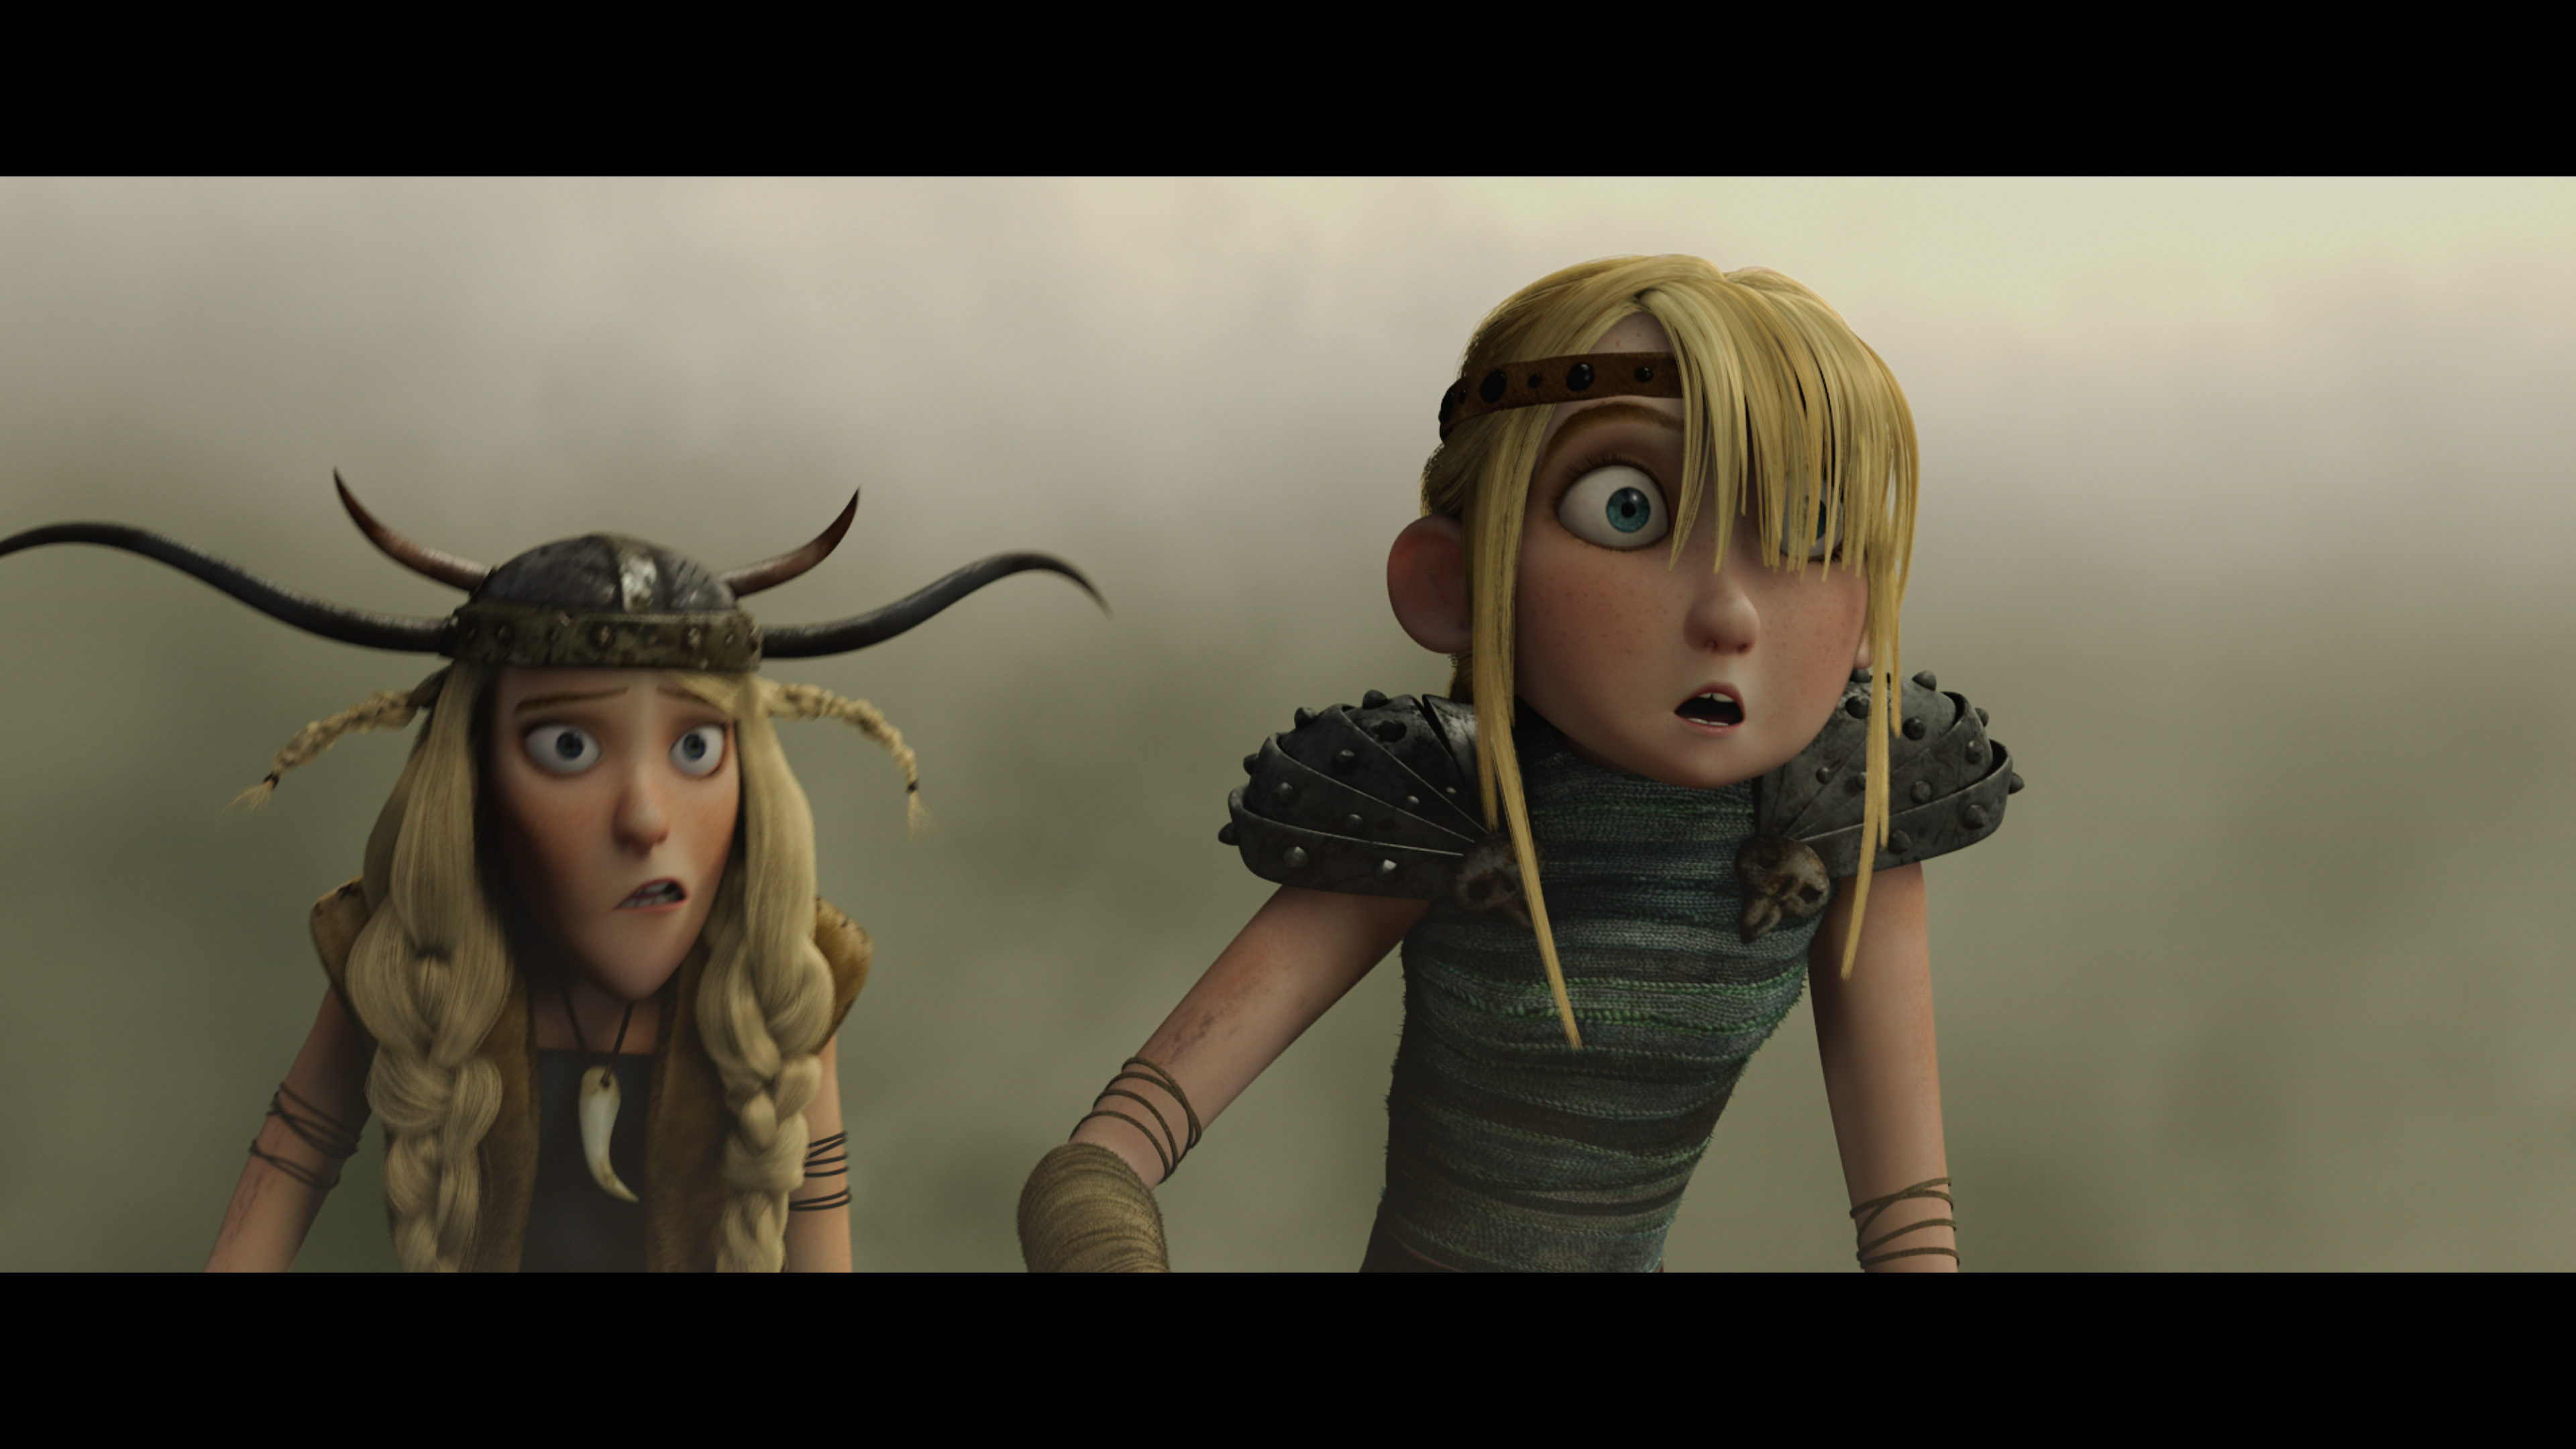 How To Train Your Dragon 4k Uhd Blu Ray Screenshots Highdefdiscnews